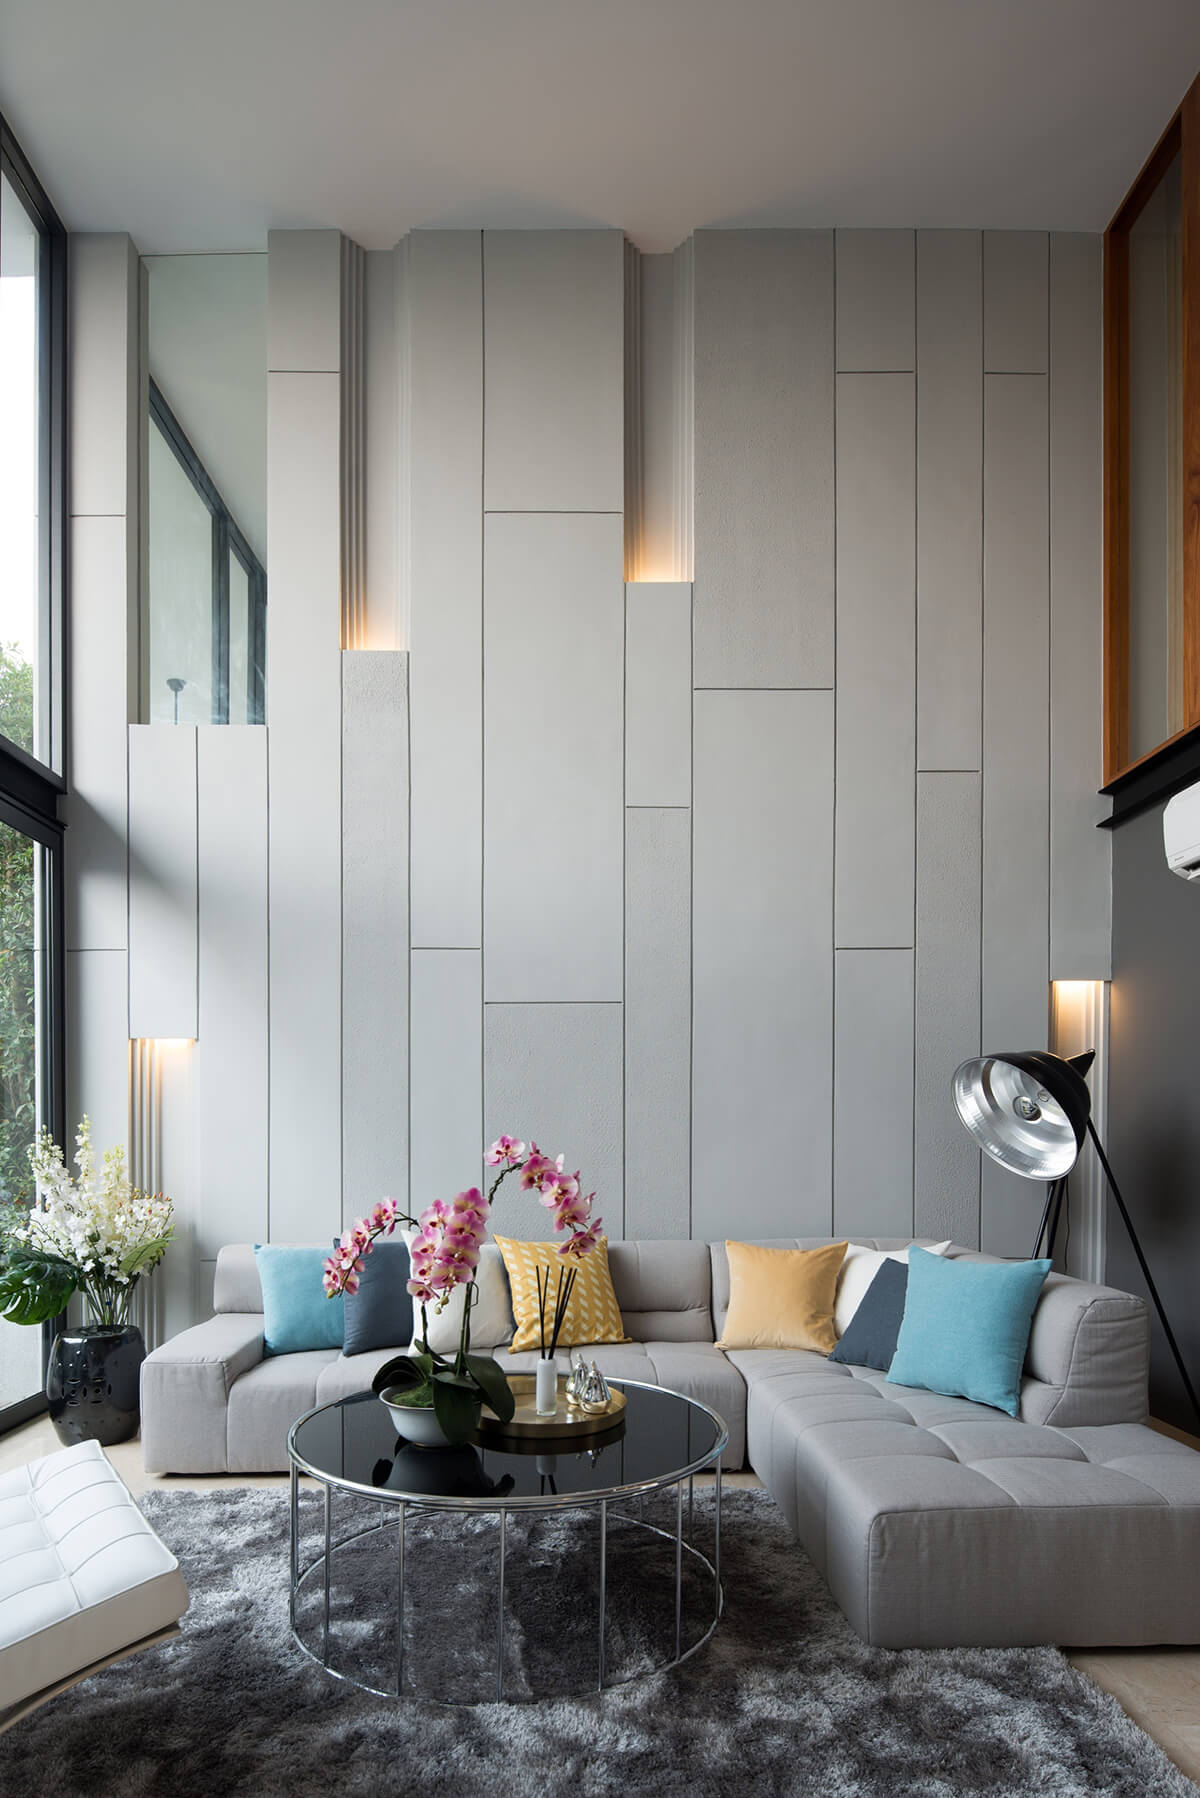 26 Best Modern Living Room Decorating Ideas and Designs ... on Best Sconces For Living Rooms Near Me id=65017